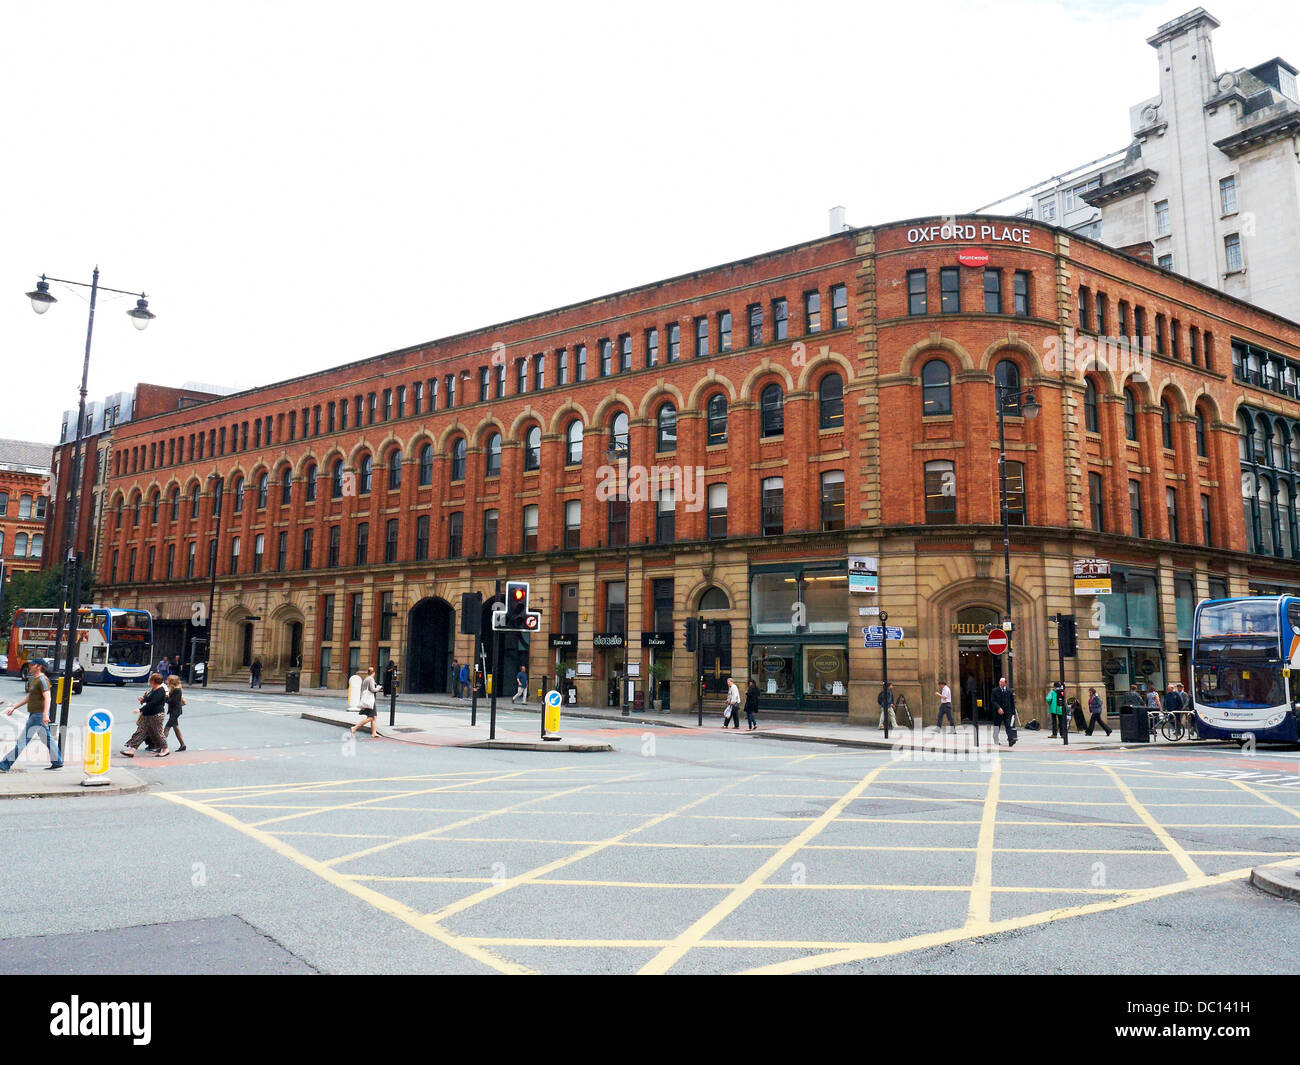 Oxford Place in Manchester UK - Stock Image